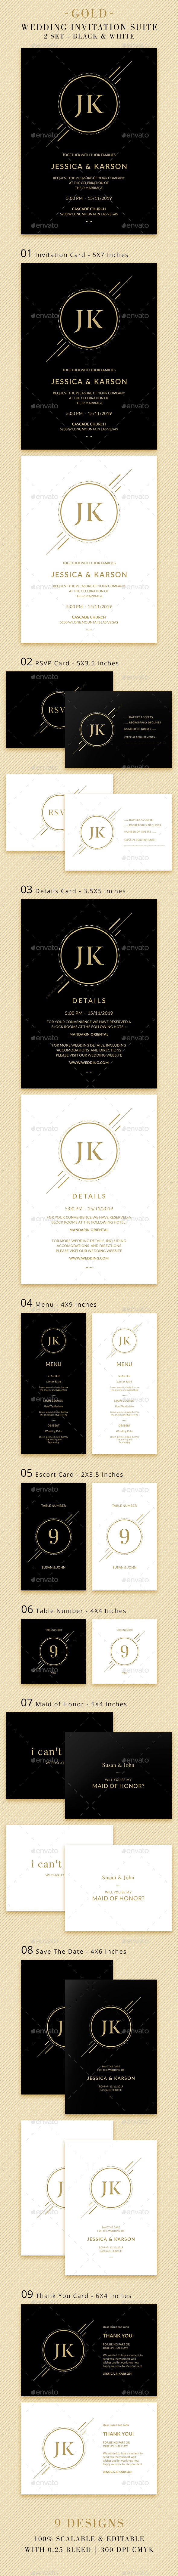 Wedding Invitation Suite - Gold - Weddings Cards & Invites